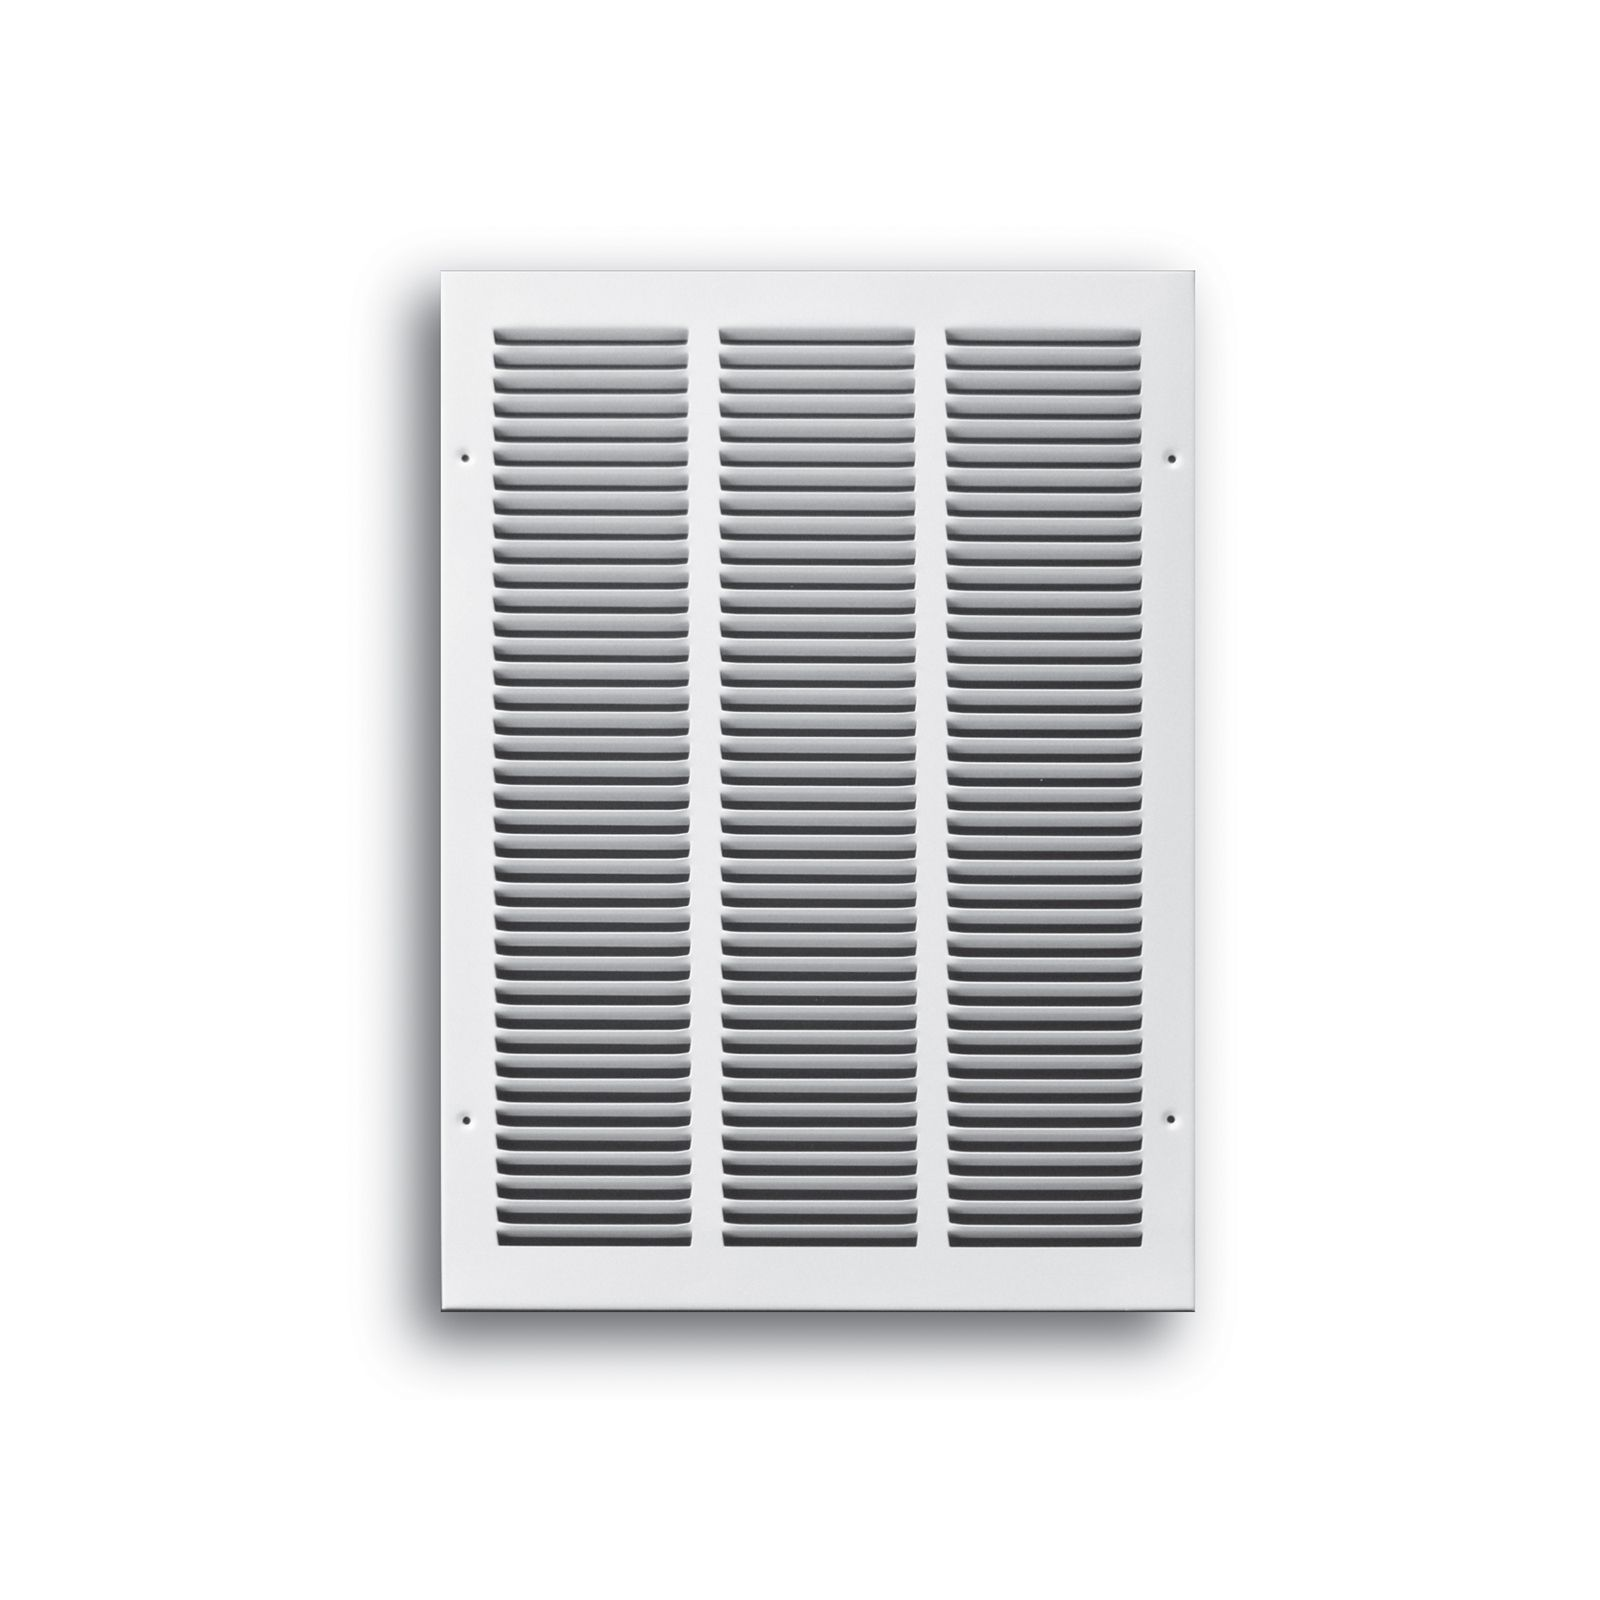 "TRUaire 170 12X36 - Steel Return Air Grille - 1/2"" Spaced Fin, White, 12"" X 36"""